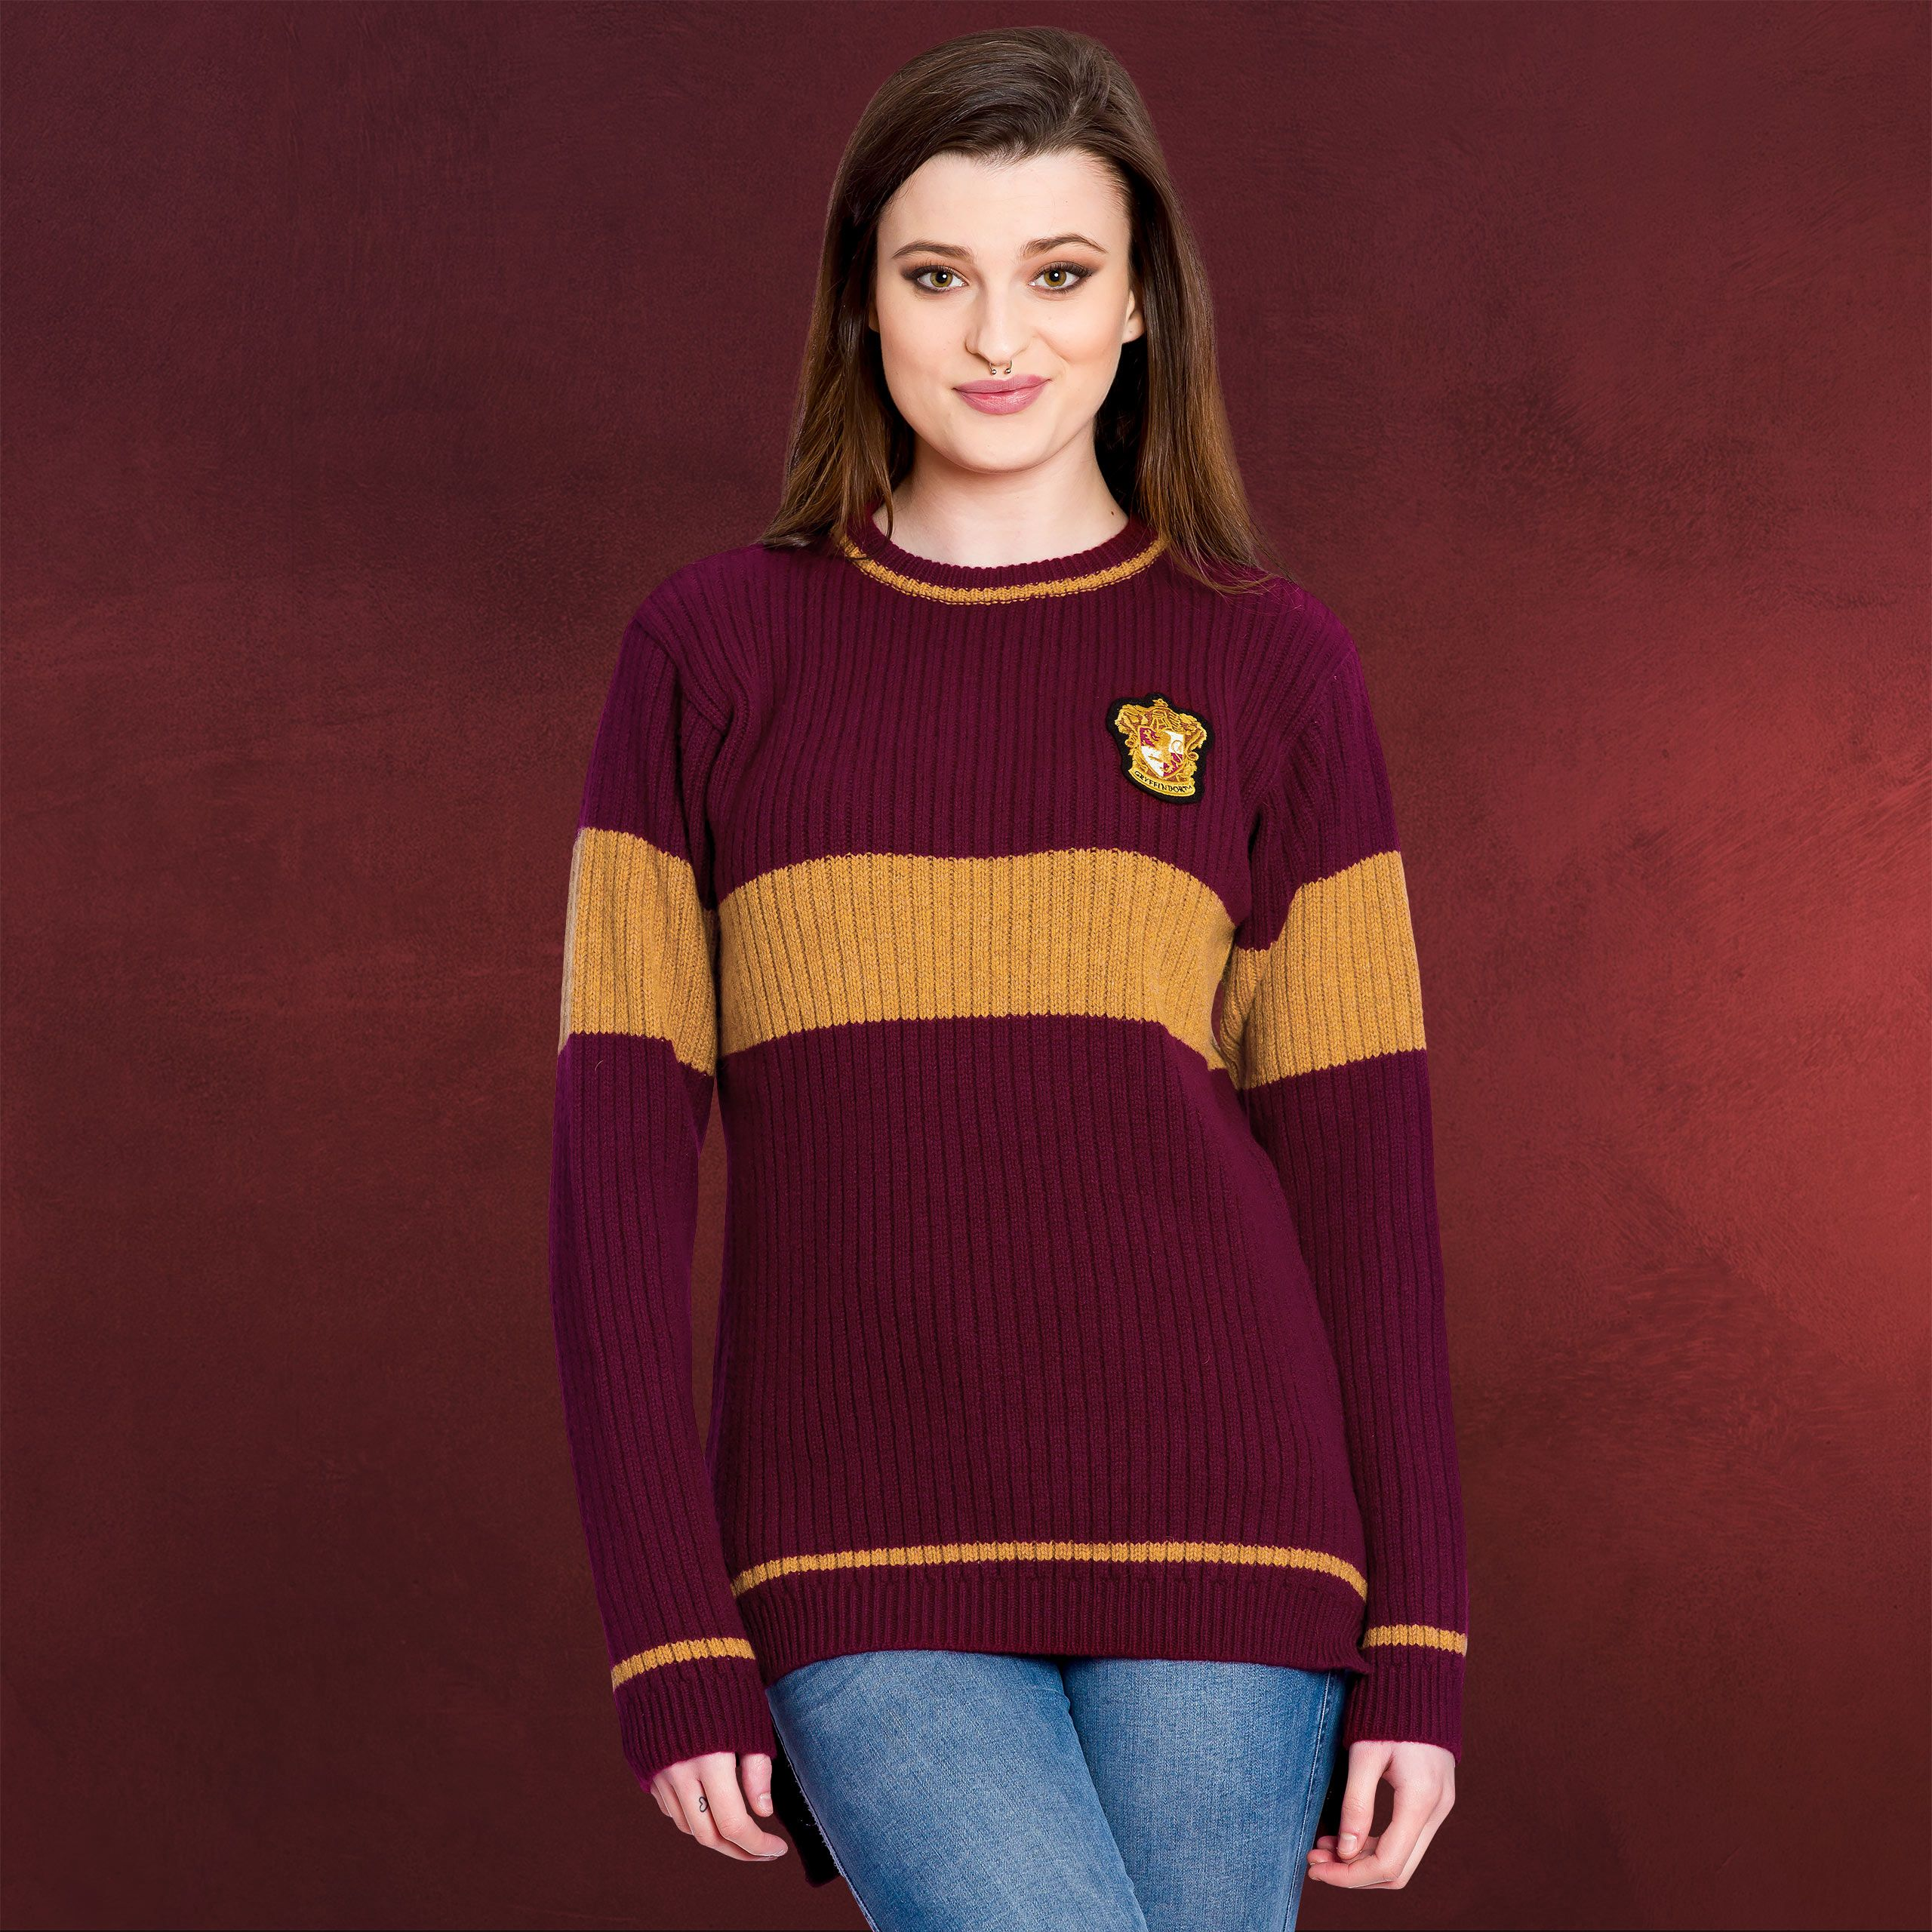 www.elbenwald.de Harry-Potter Harry-Potter-Quidditch-Gryffindor-Sweater b0189d704fb